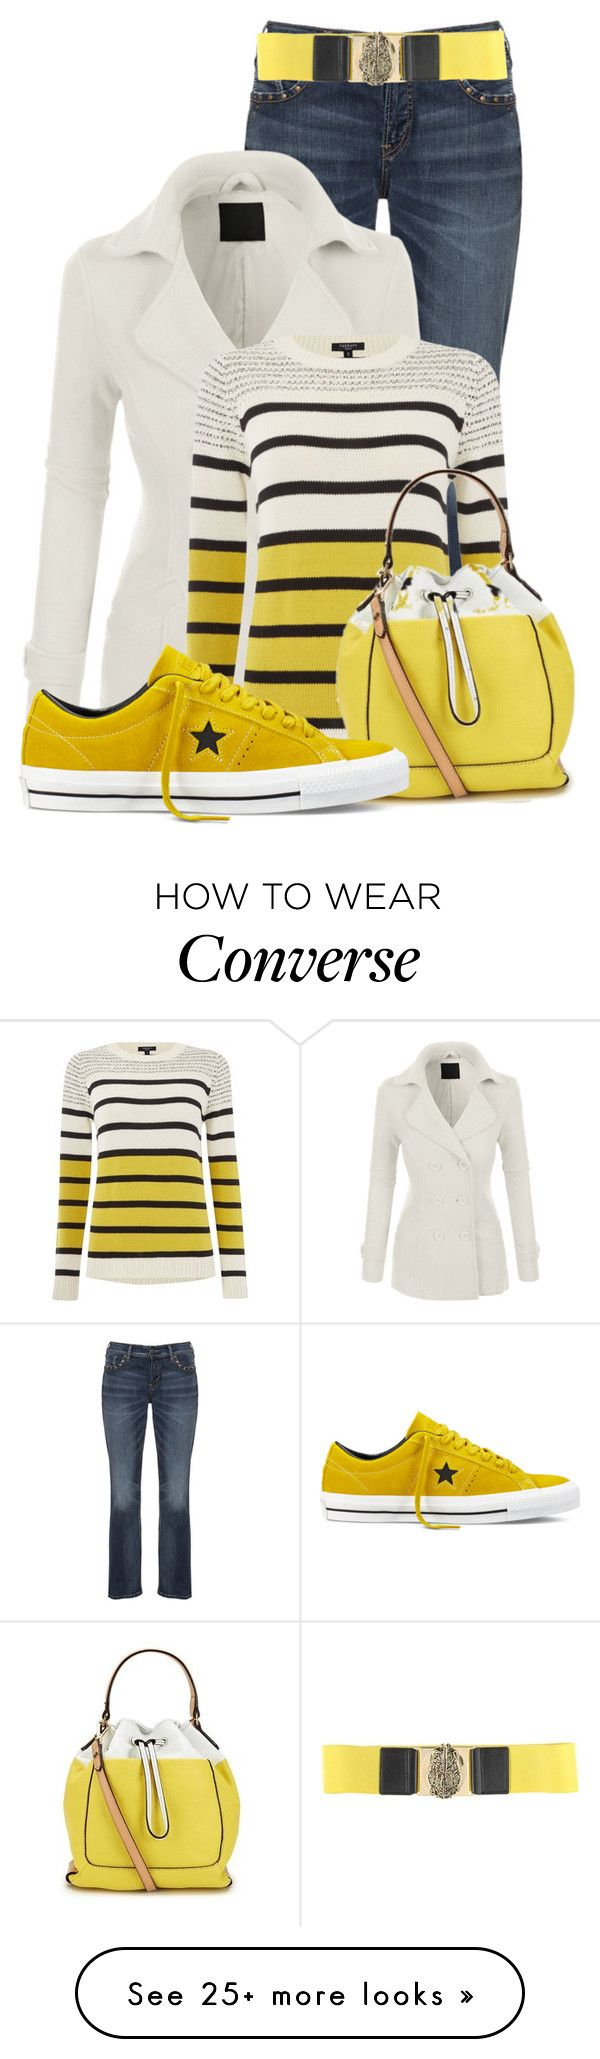 """Untitled #13295"" by nanette-253 on Polyvore featuring Silver Jeans Co., LE3NO, Therapy, Isaac Mizrahi, Converse and Dondup"